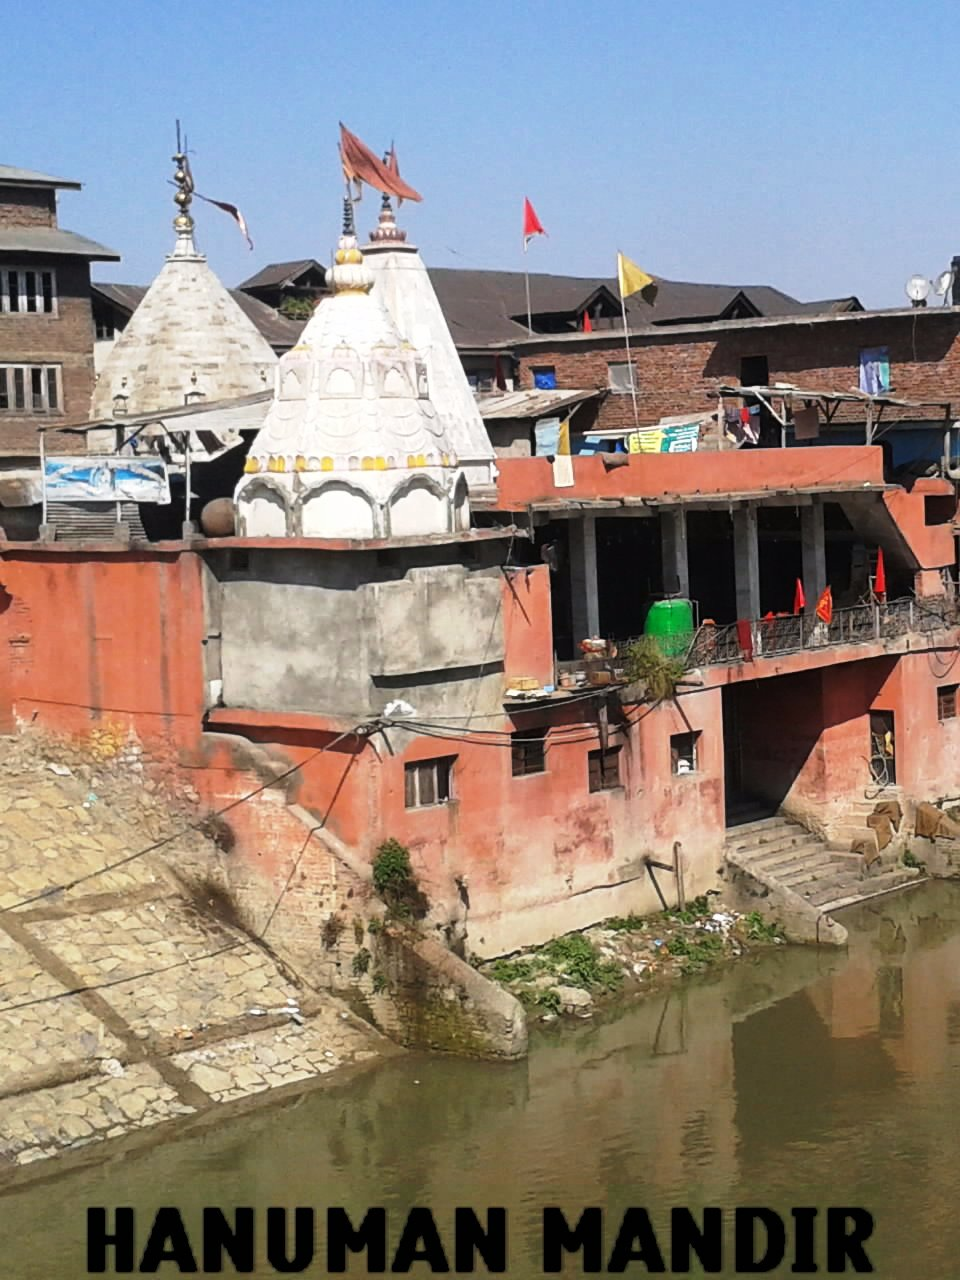 Hanuman Mandir In Rajbagh, Srinagar